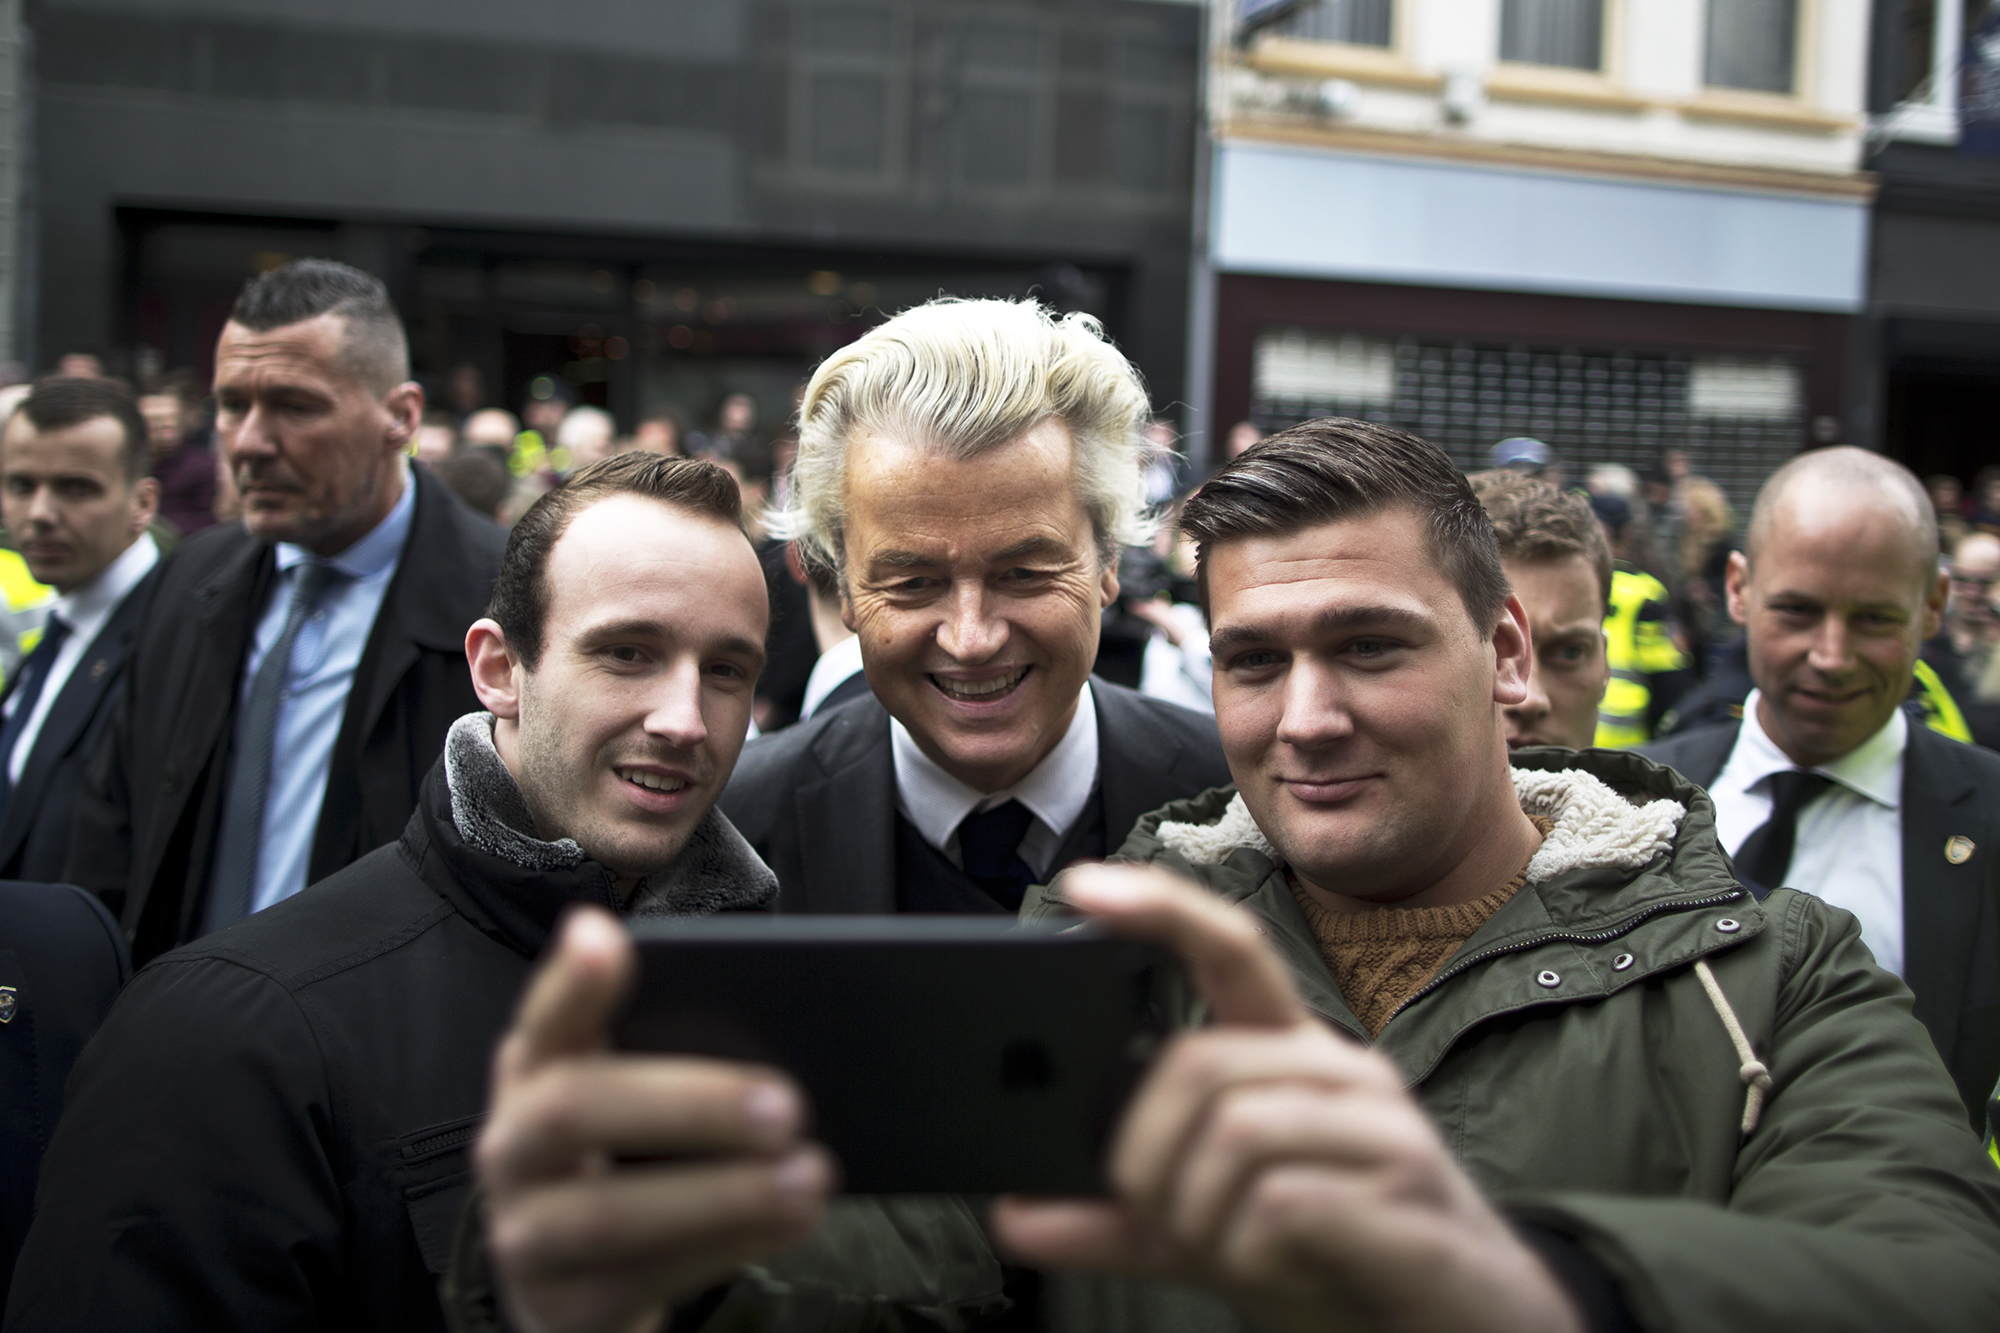 Firebrand anti-Islam lawmaker Geert Wilders, poses for a selfie with supporters during a campaign stop in Heerlen, Netherlands, on March 11, 2017.